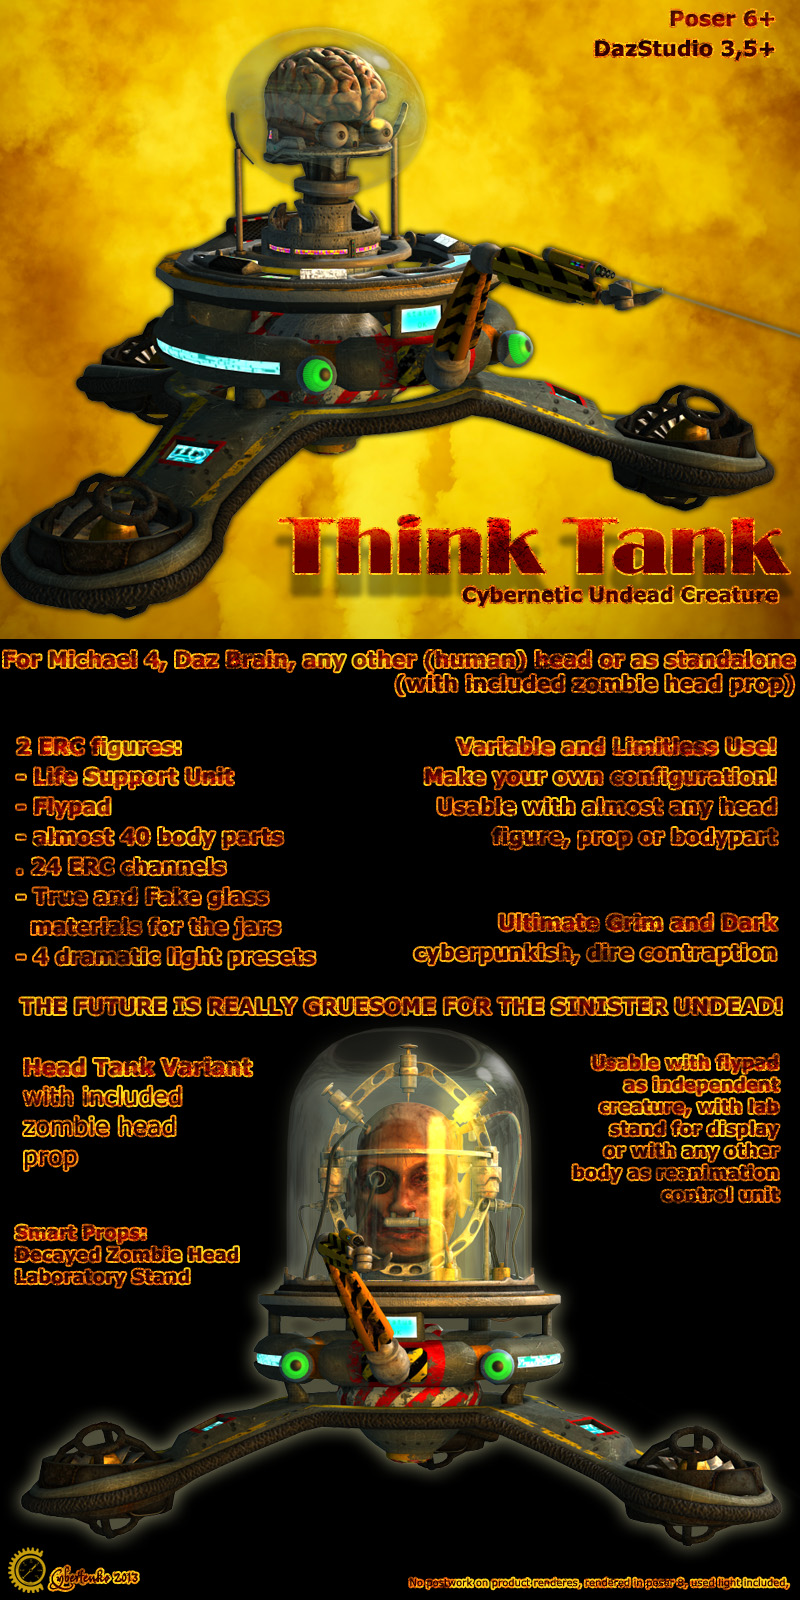 Think Tank - Cybernetic Undead Creature